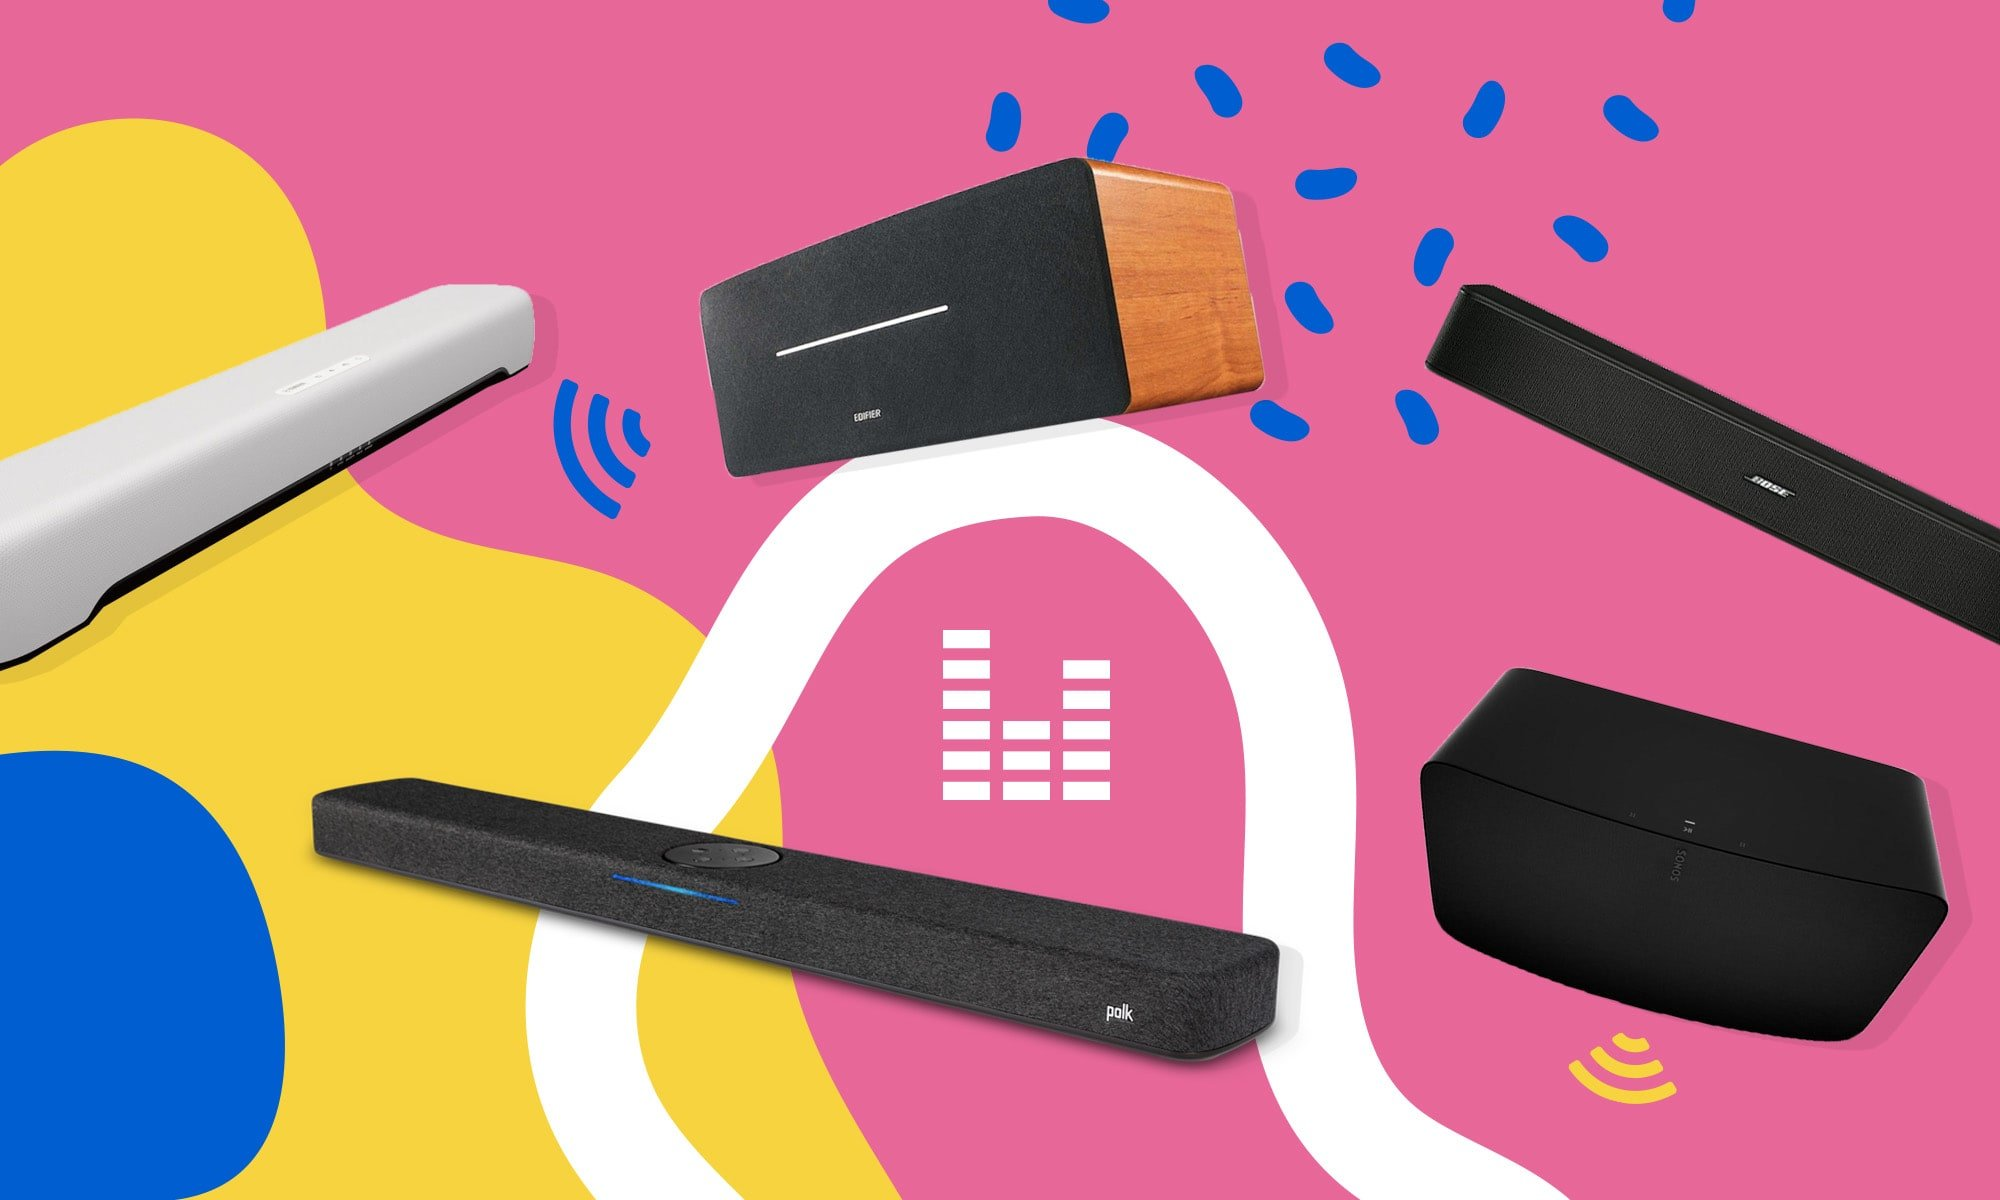 The best home theater devices and accessories: soundbars, speakers, and more - cover